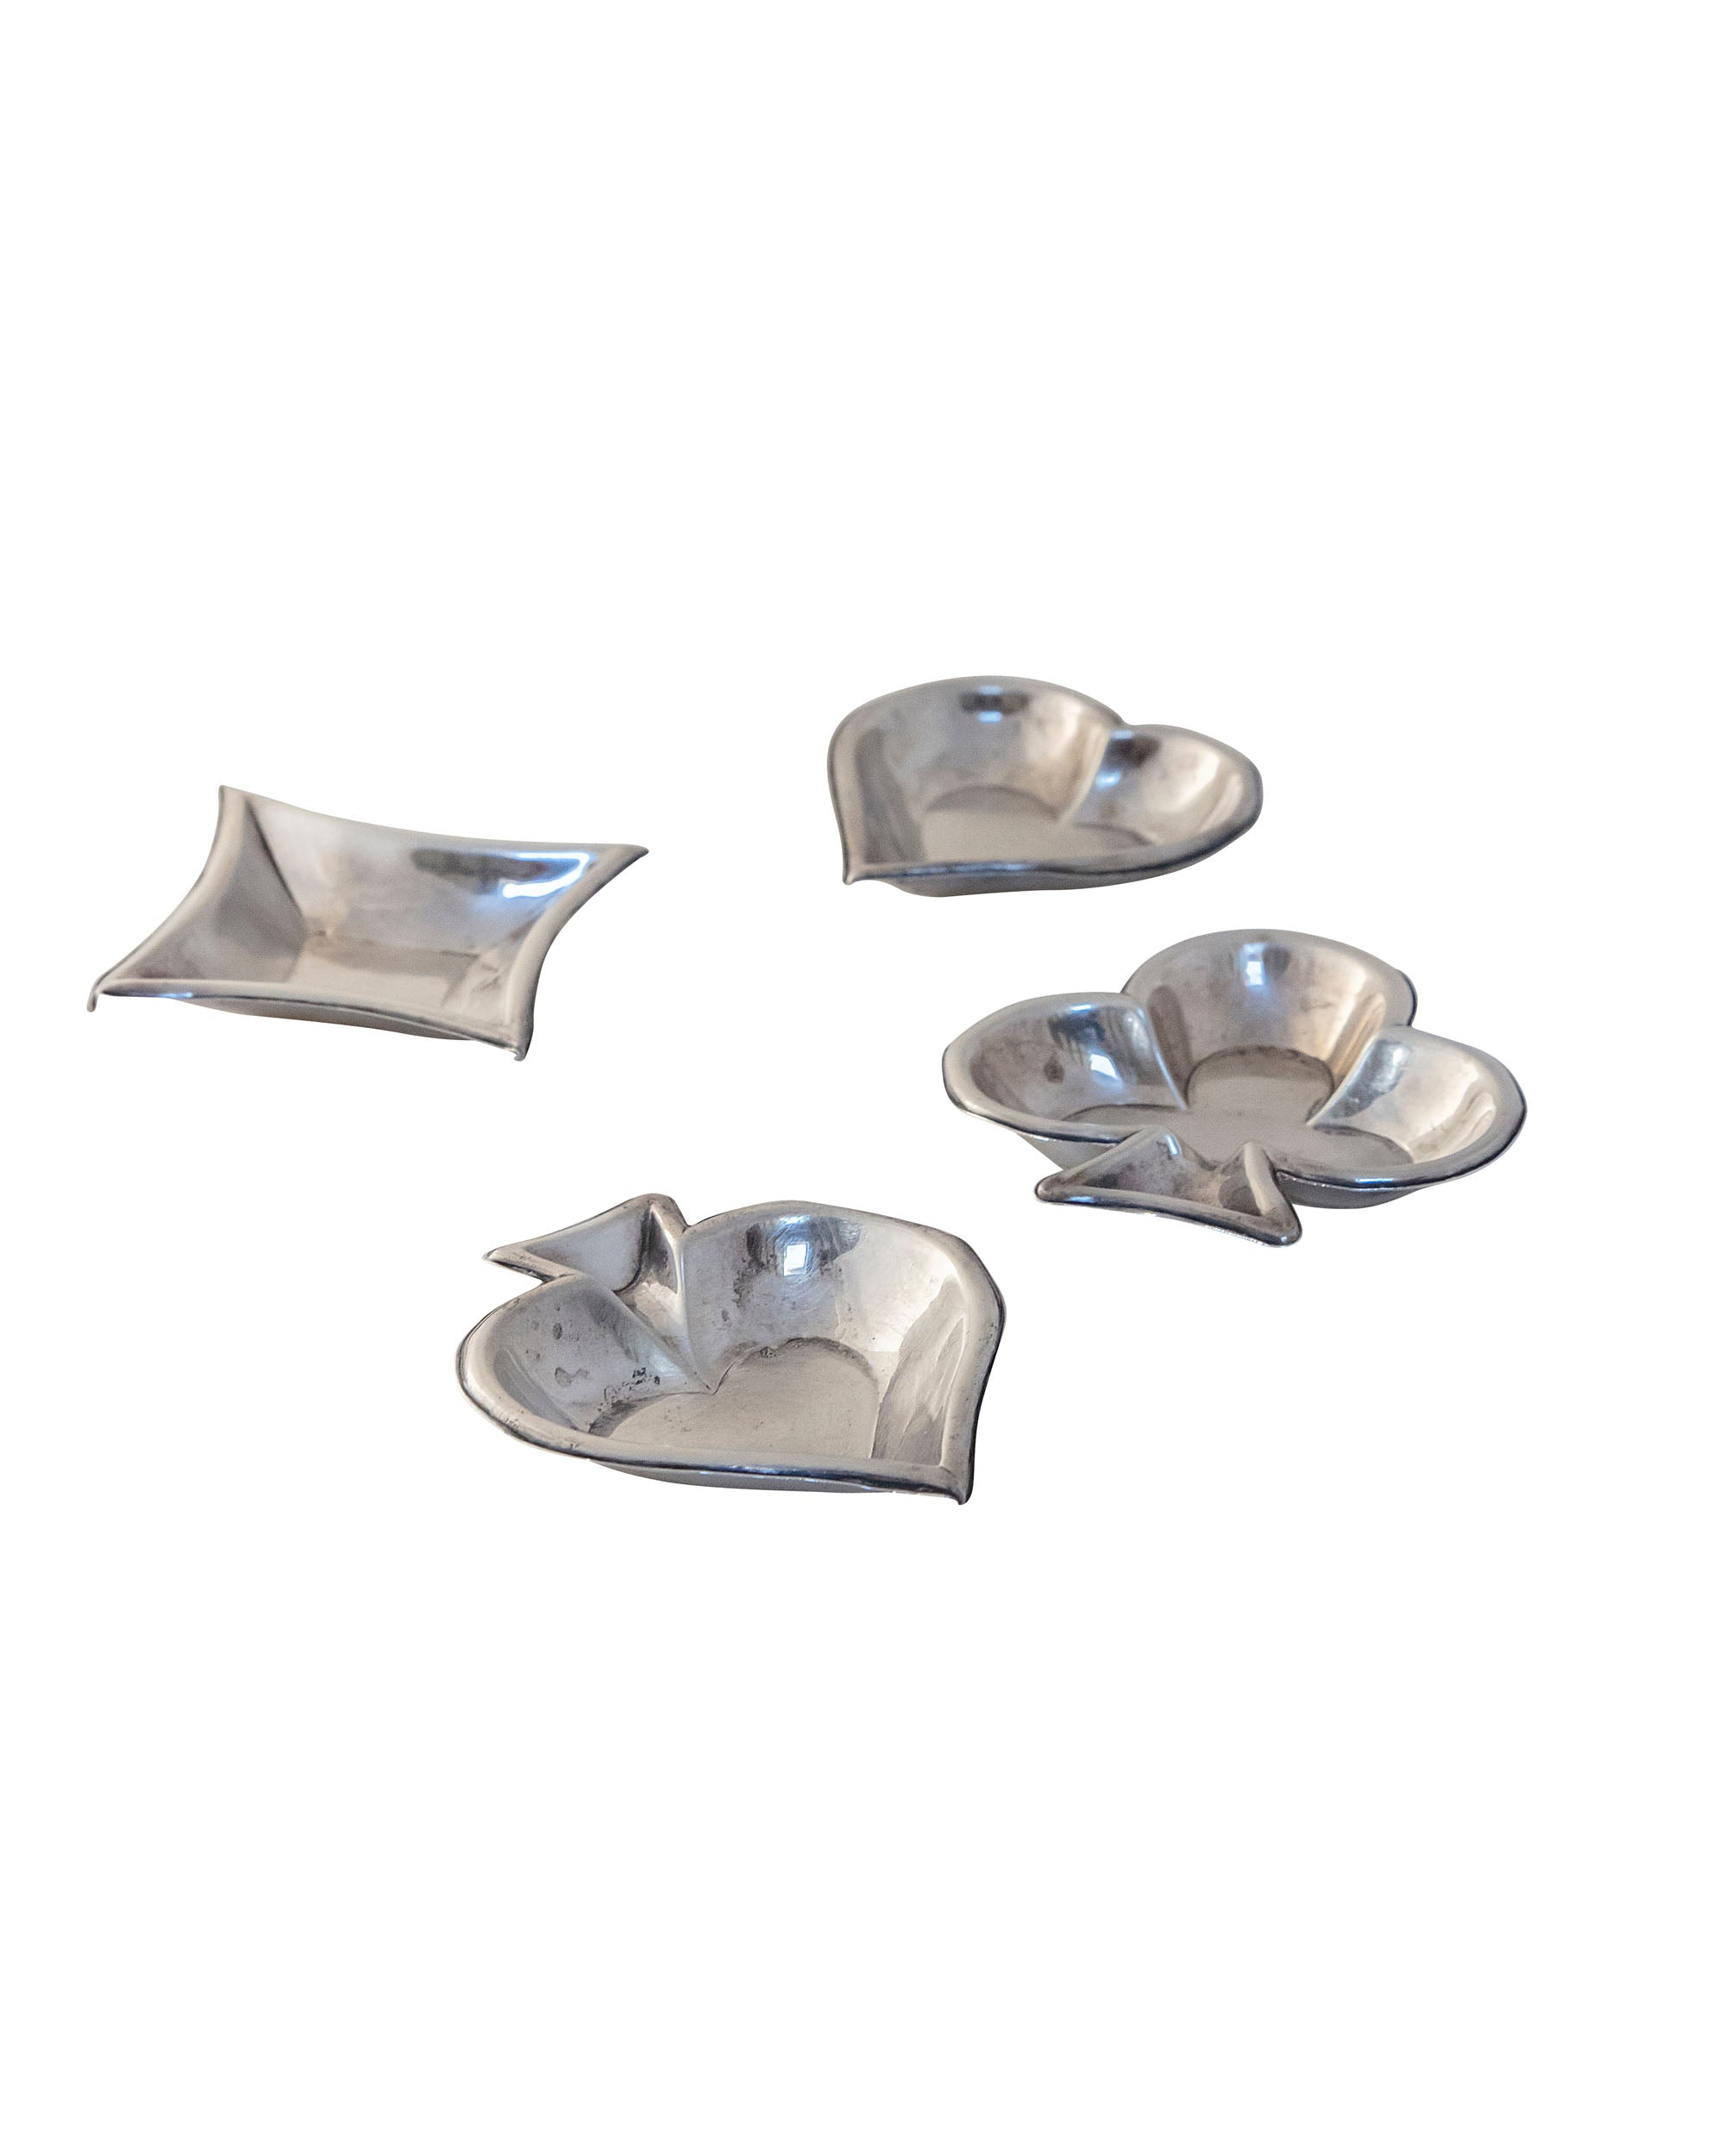 Set of four metal ashtrays shaped like the different suits of the deck